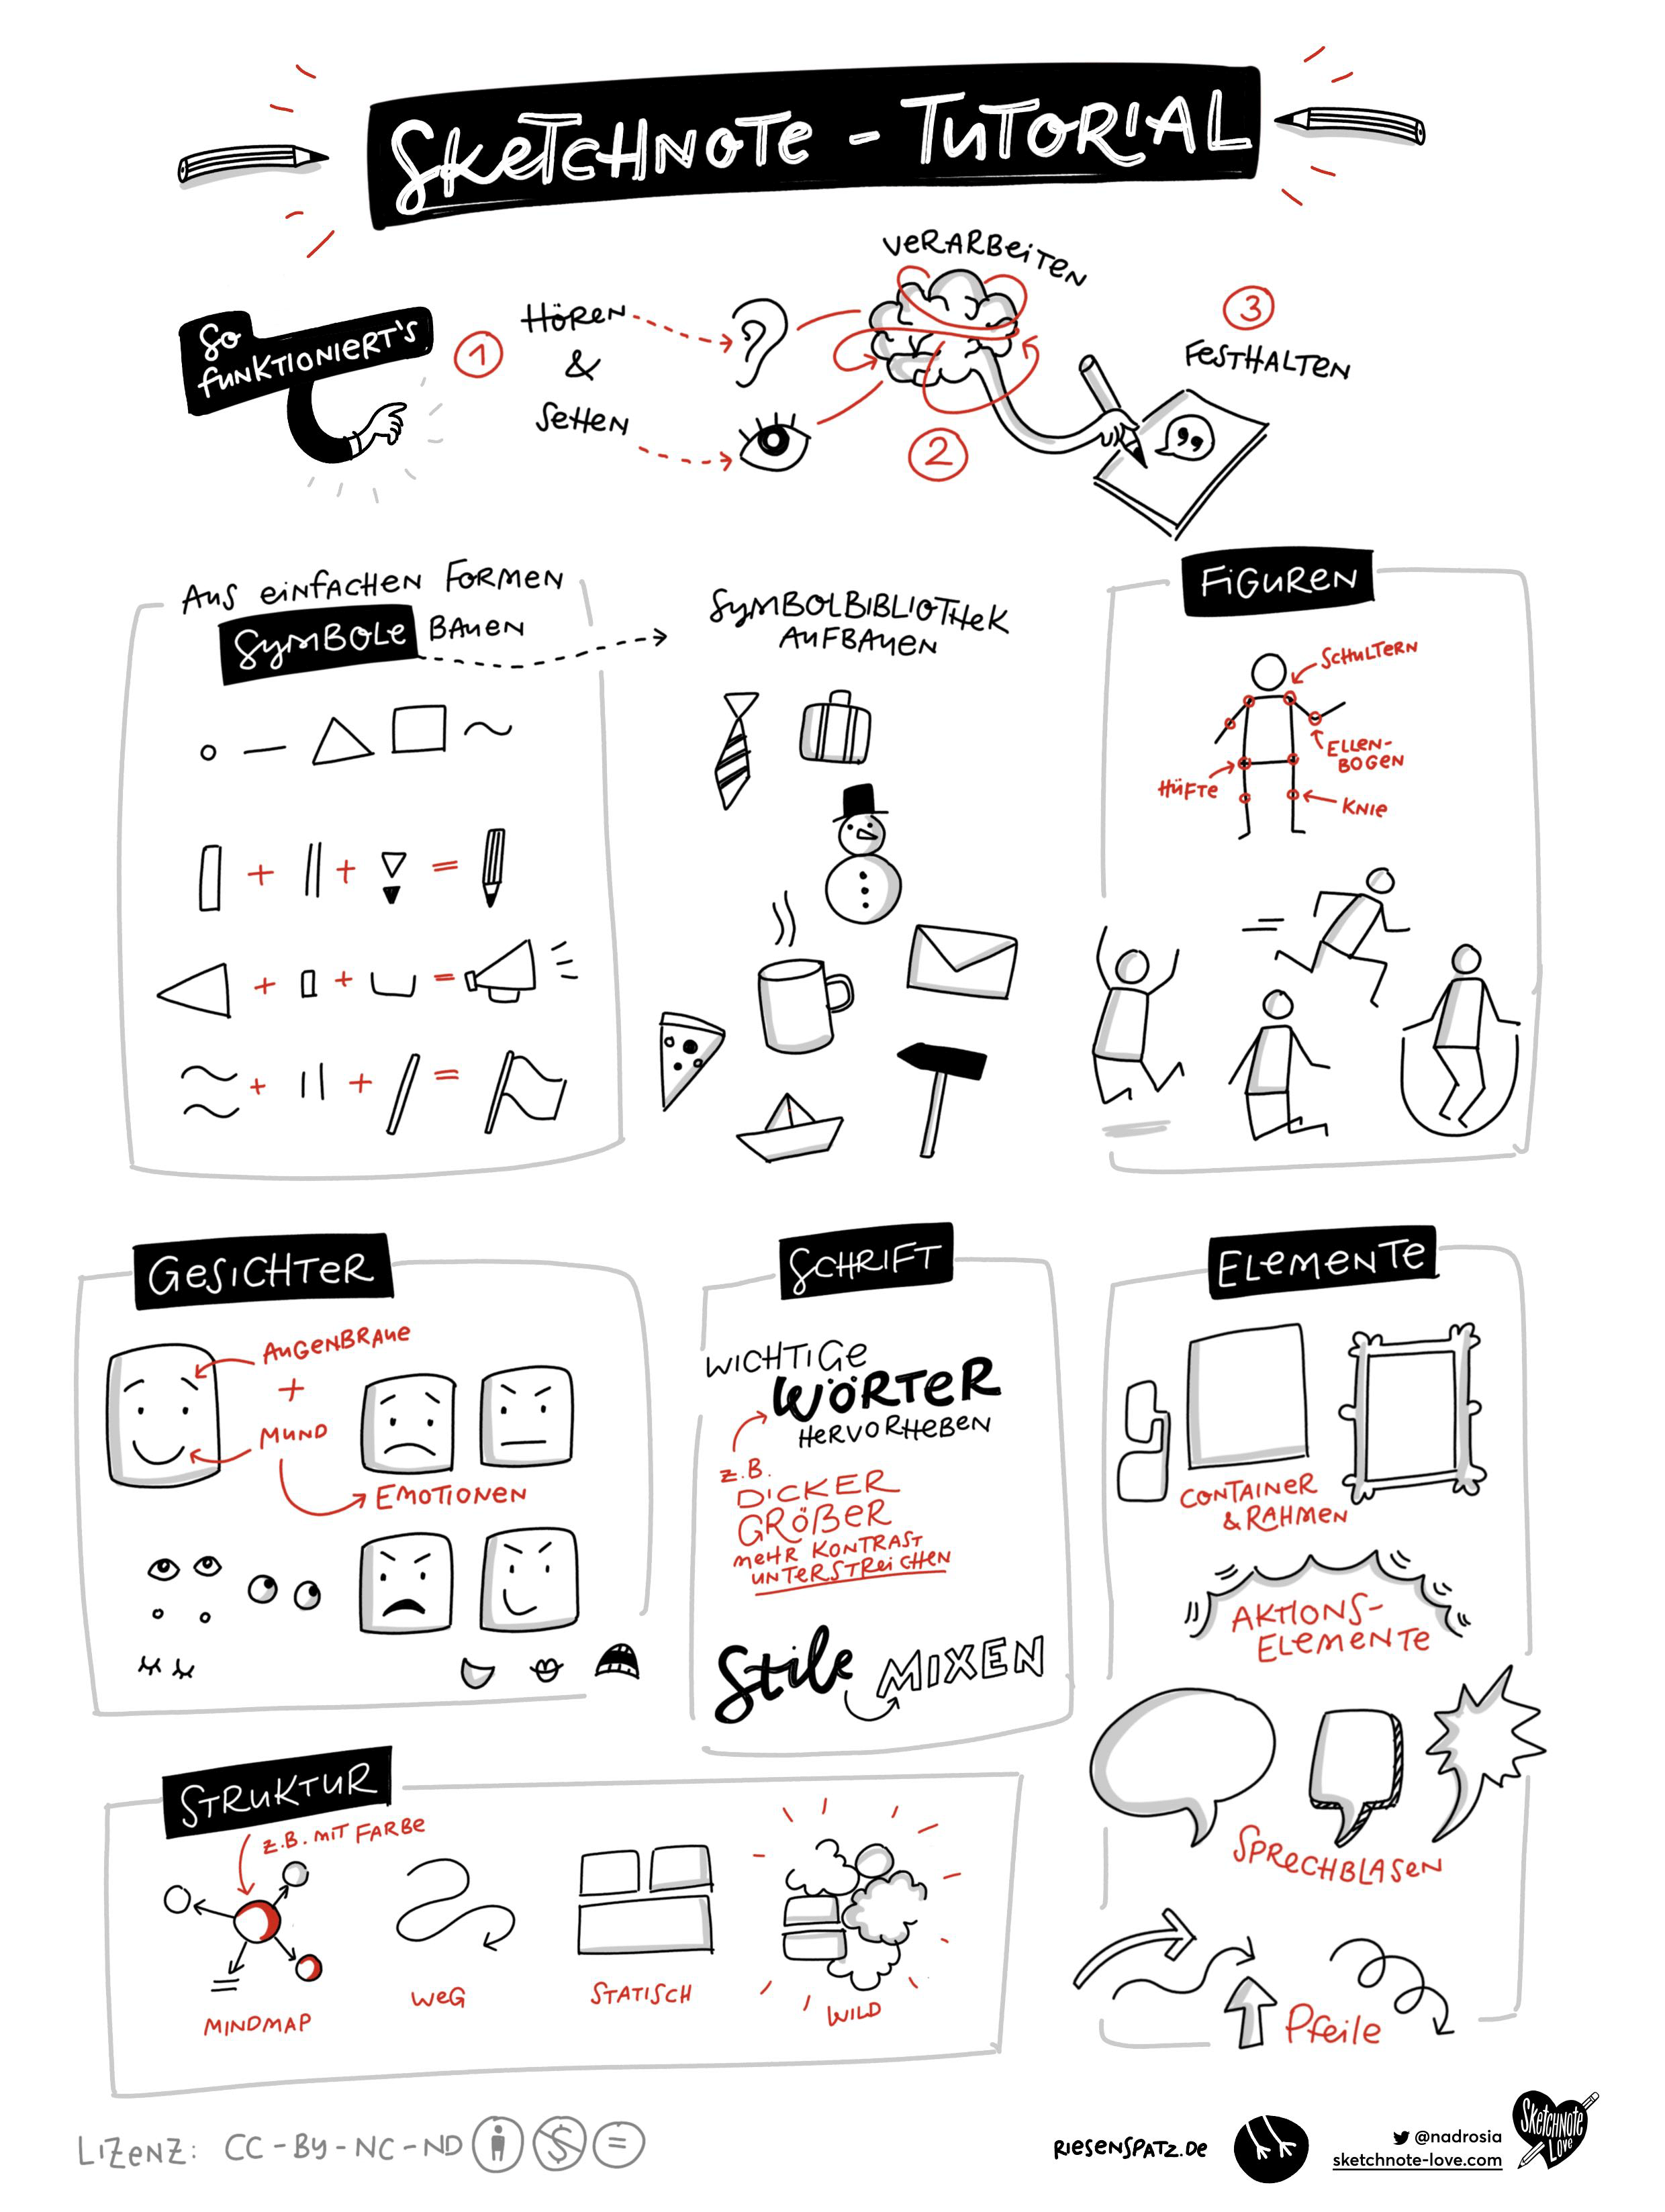 Sketchnotes Tutorial Cheat Sheet